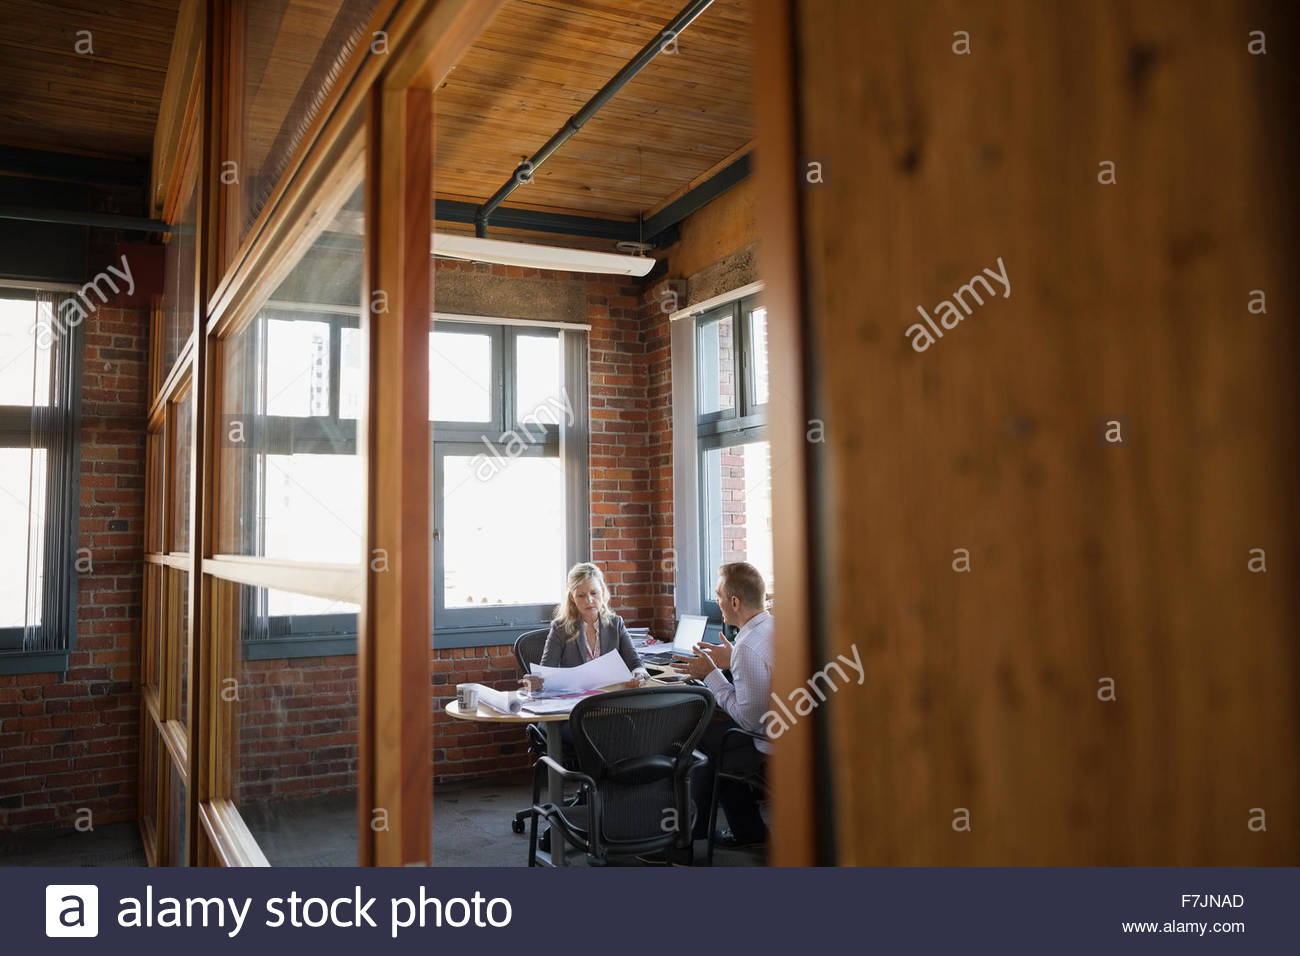 Business people discussing paperwork in office - Stock Image